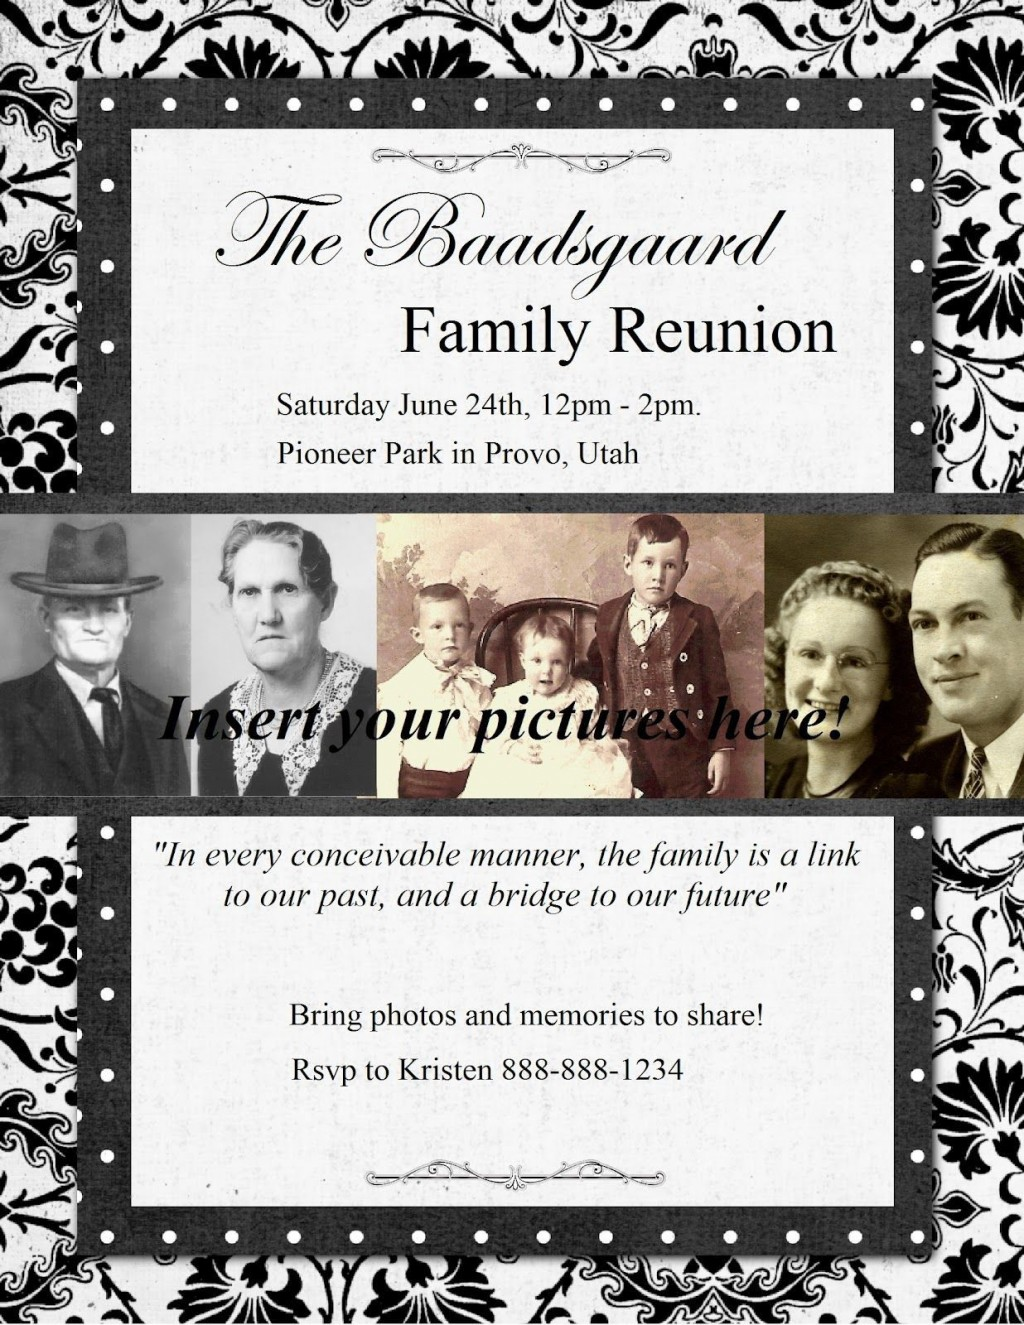 007 Frightening Family Reunion Flyer Template High Resolution  Templates Free ForLarge